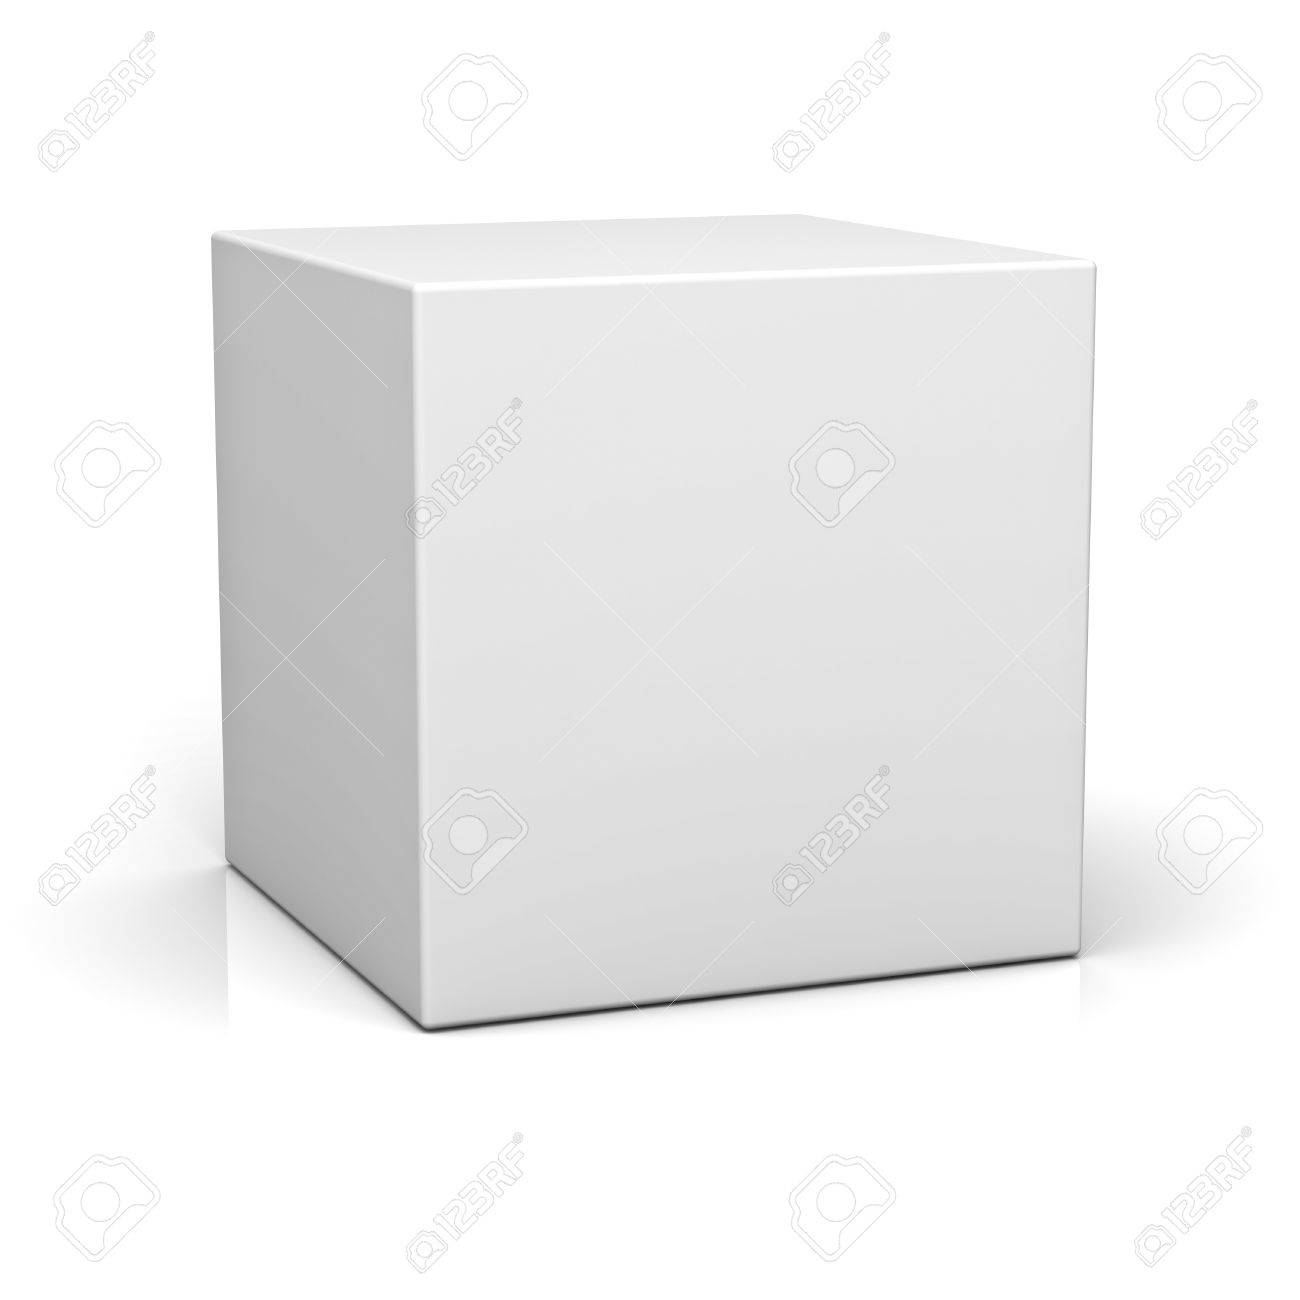 Blank box on white background with reflection Stock Photo - 14308064